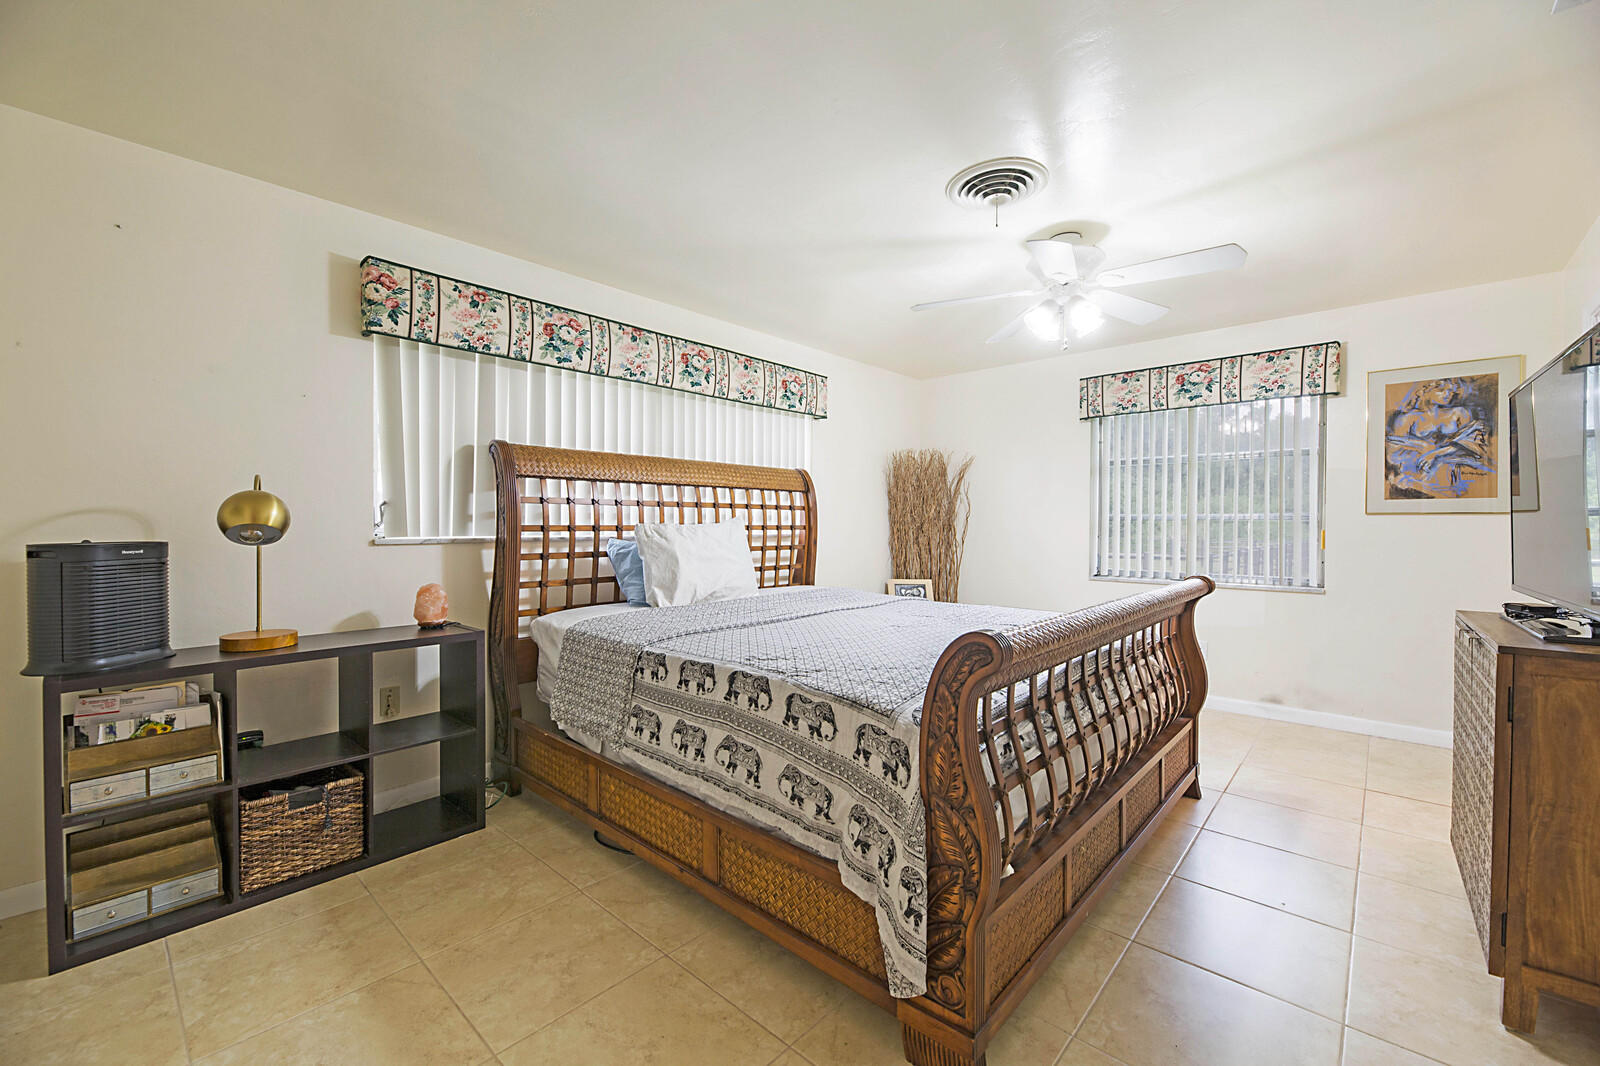 Loxahatchee Groves, Florida 33470, 3 Bedrooms Bedrooms, ,2 BathroomsBathrooms,Residential,For Sale,Collecting Canal,RX-10650594